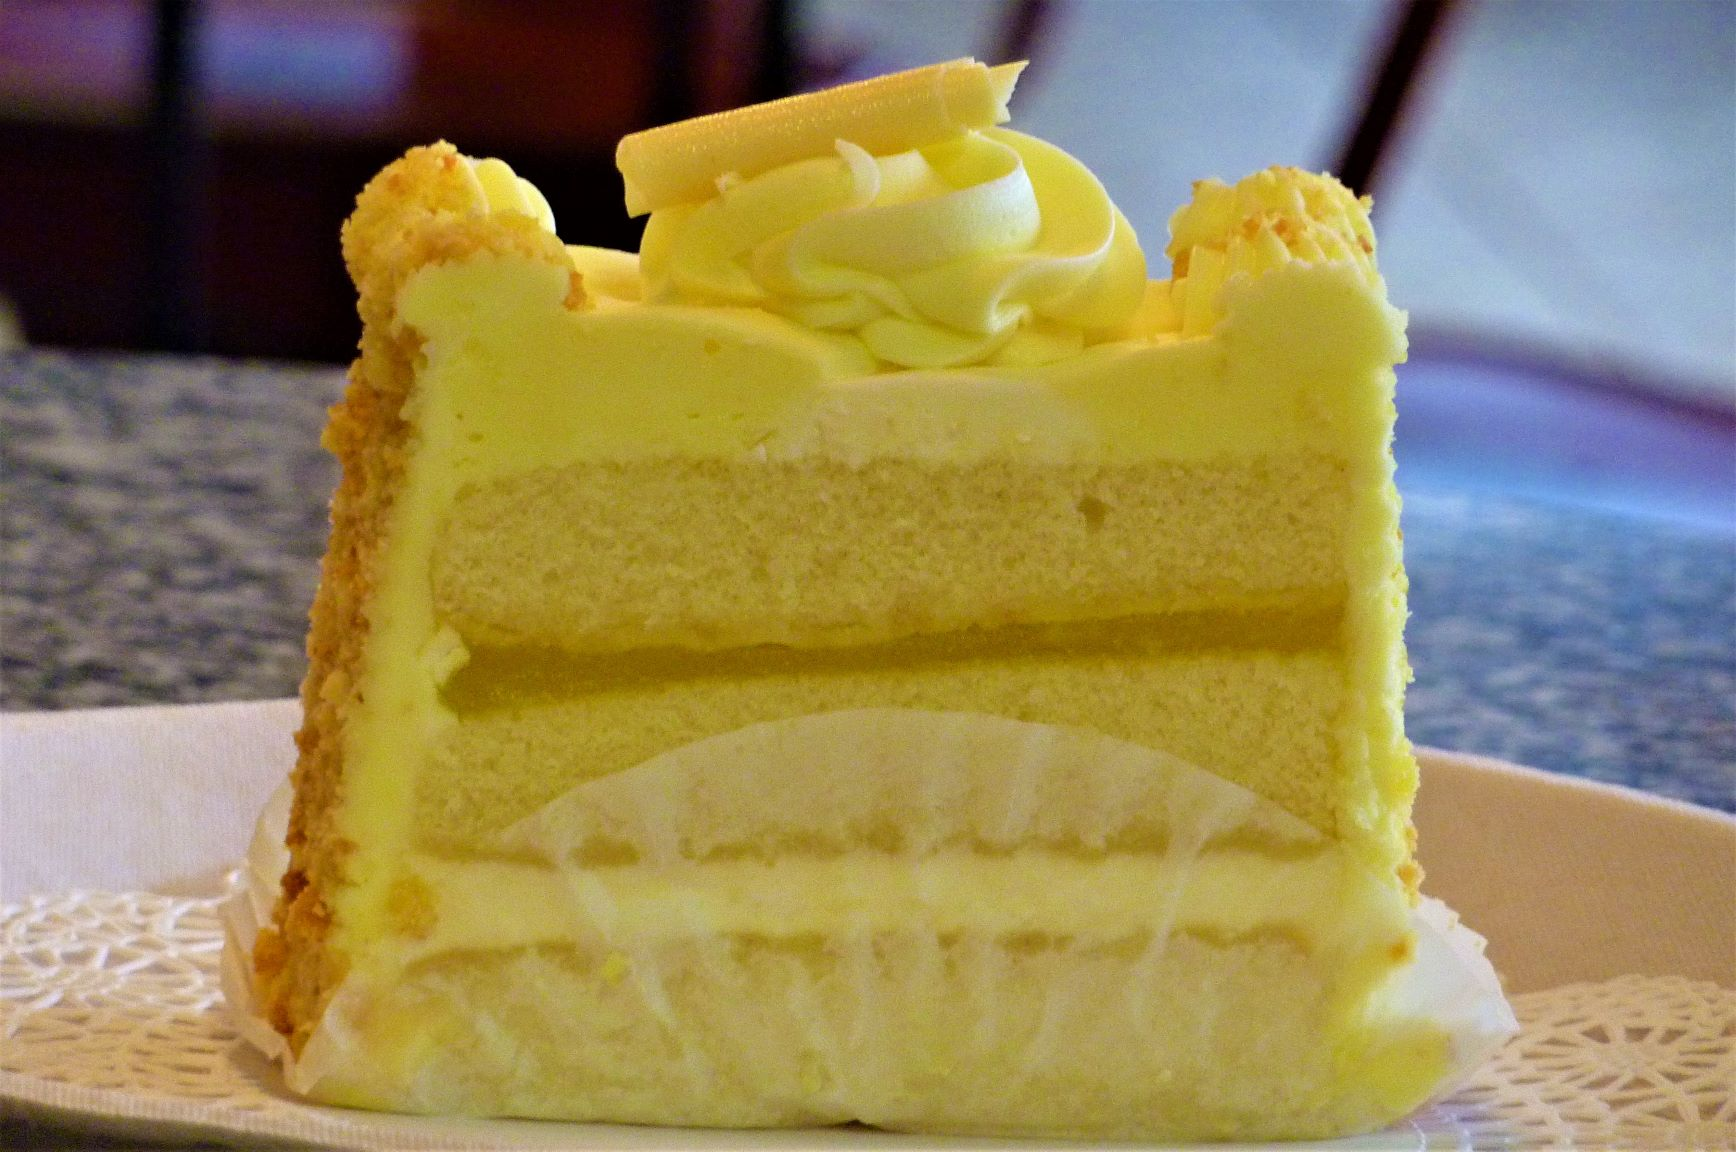 Montilio's lemon cake from CRISPWalpole in Walpole, MA